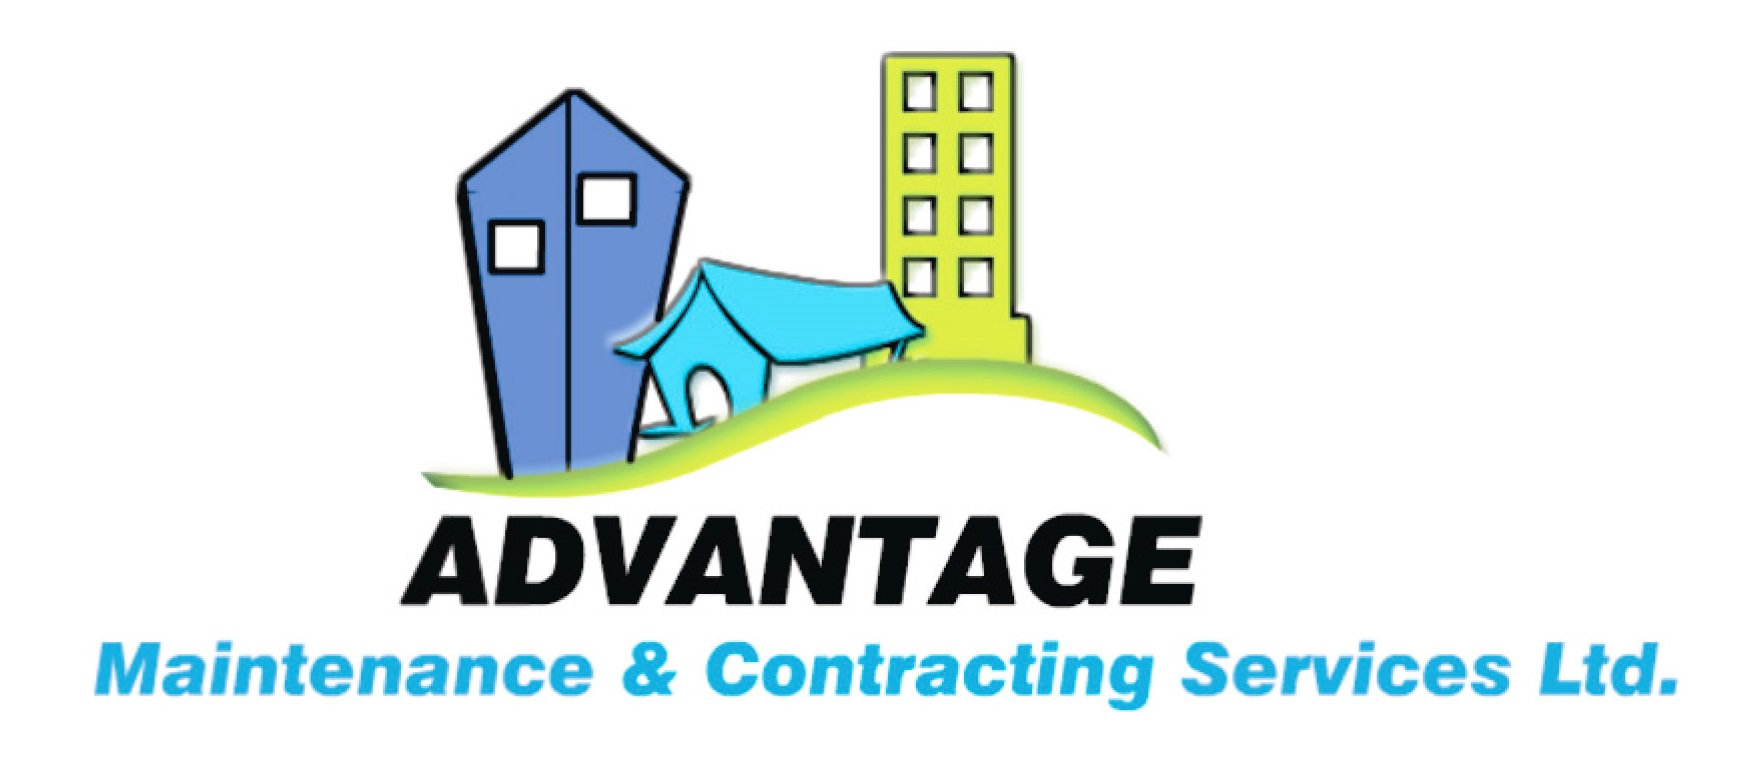 Advantage Maintenance and Contracting Services Ltd.